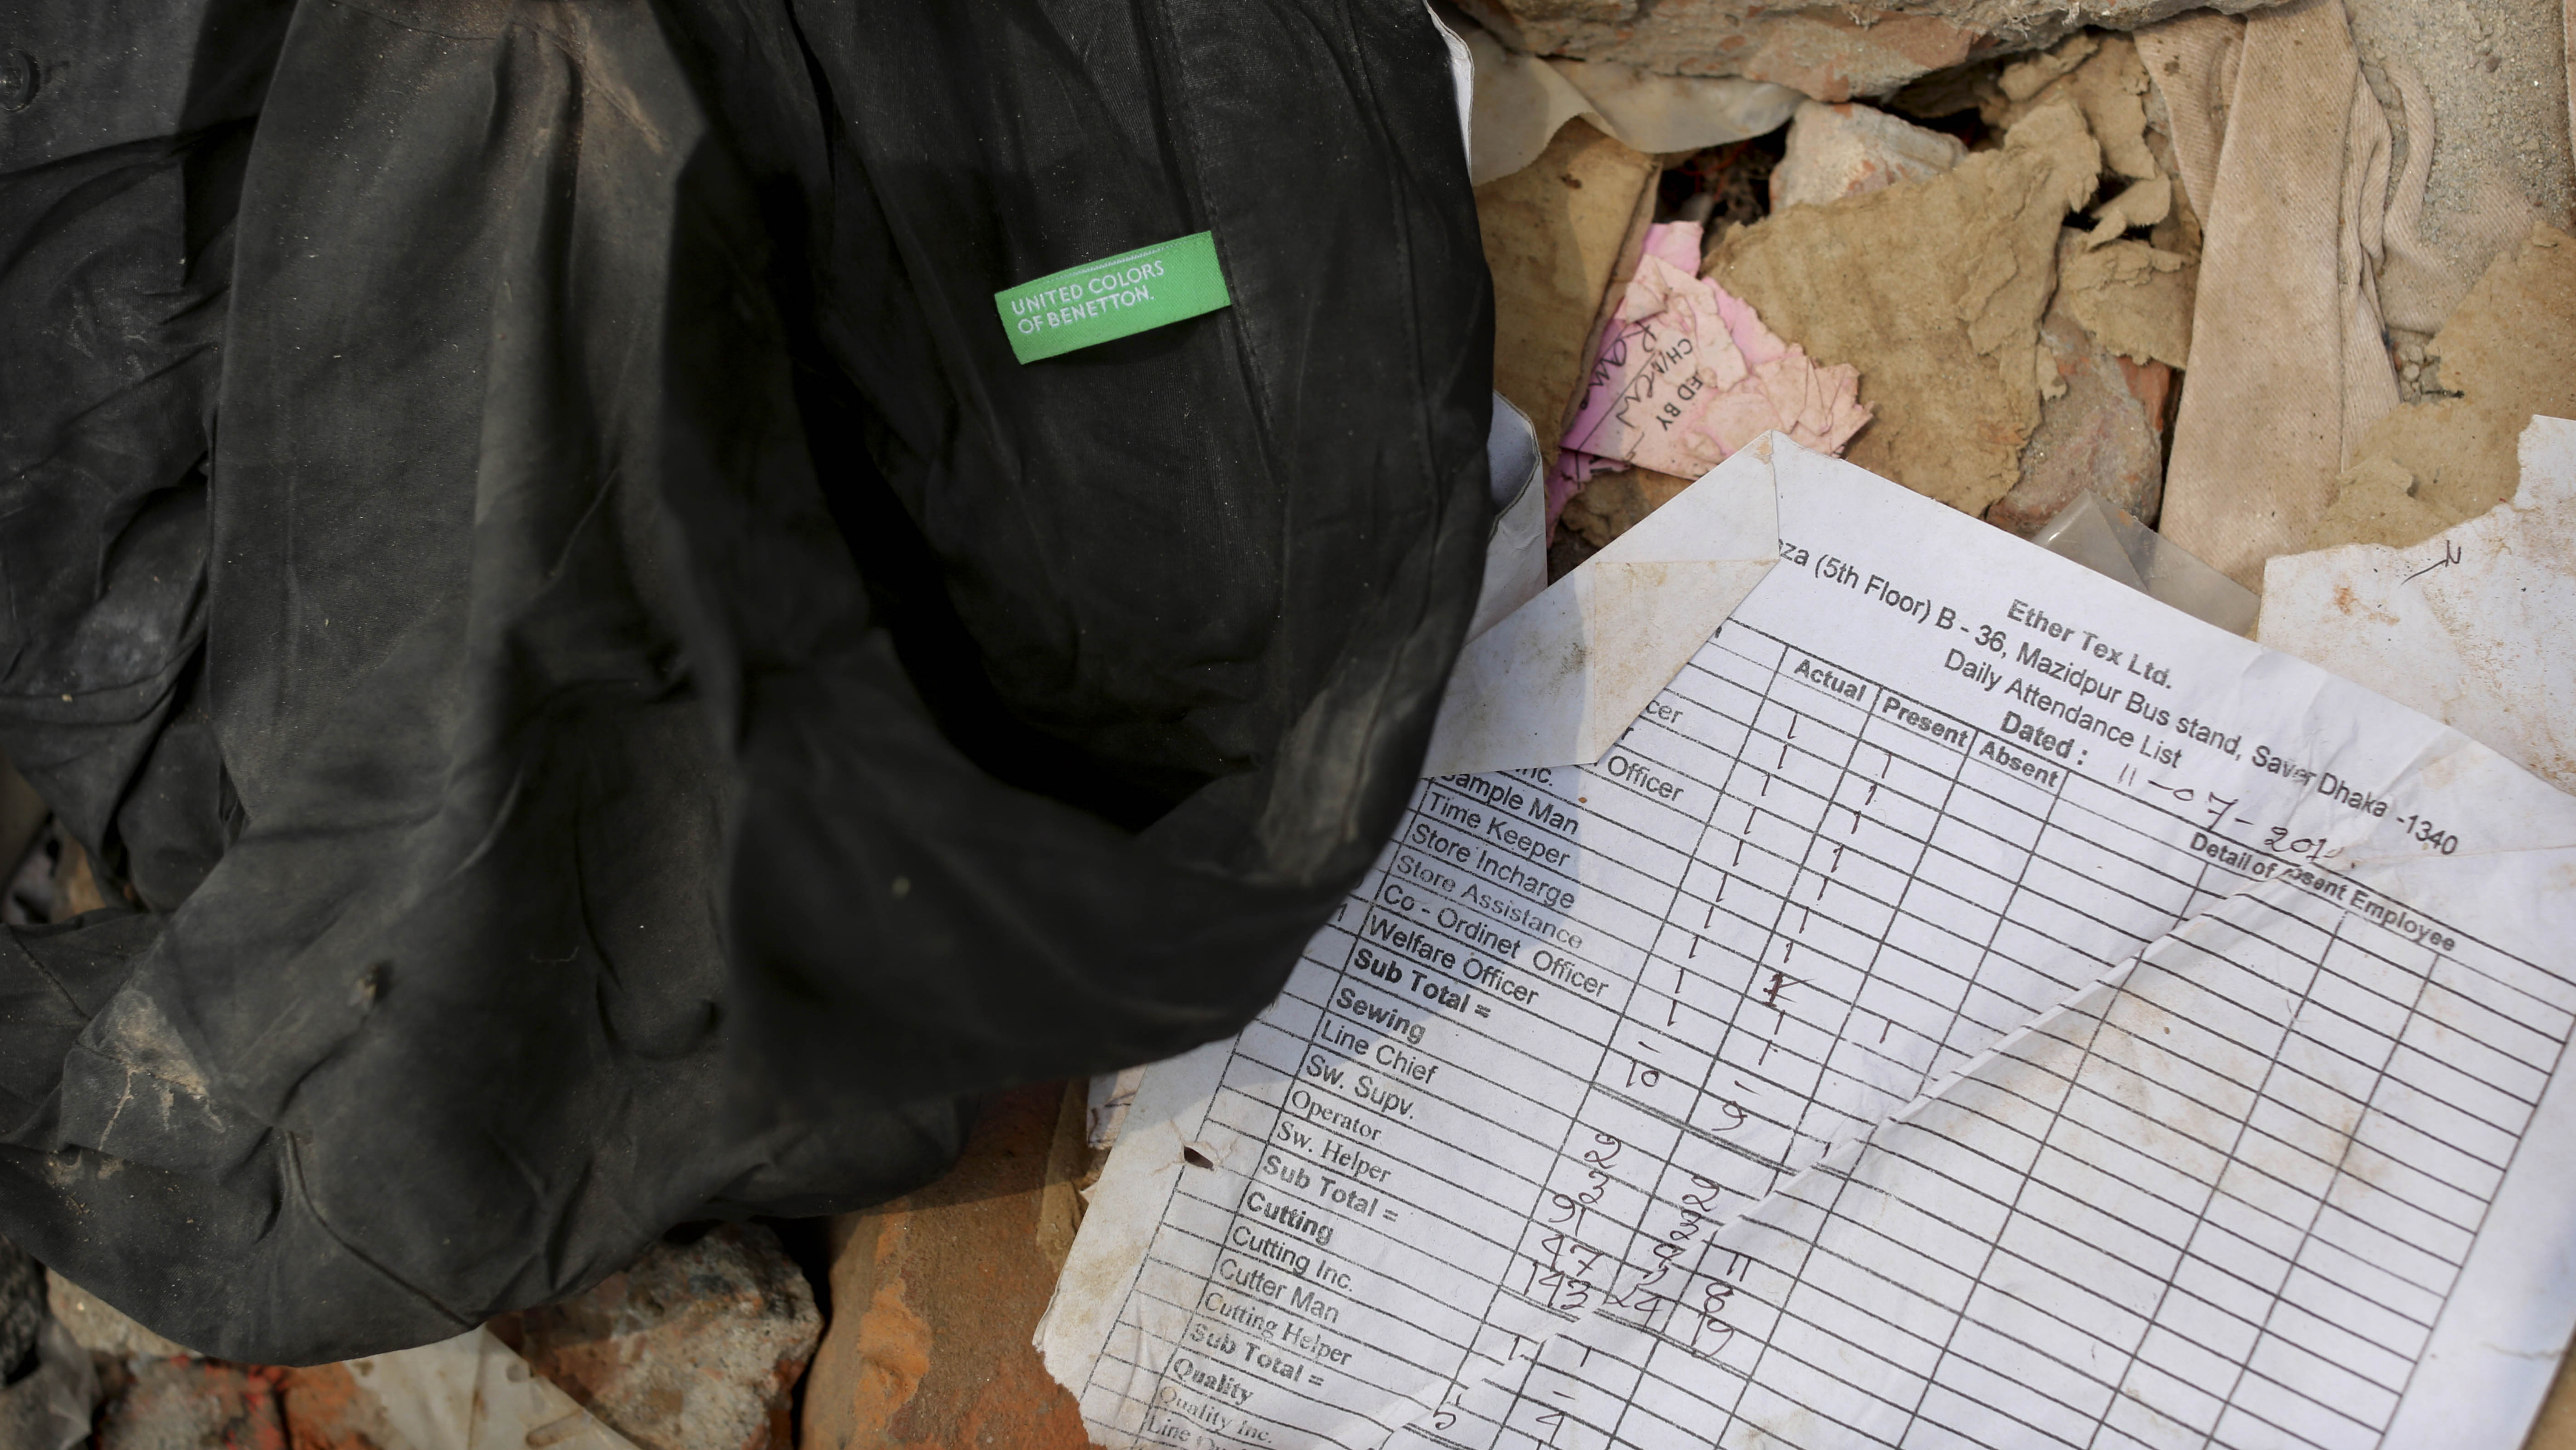 """A shirt labeled """"United Colors of Benneton"""" found in the rubble, along with an attendance sheet for workers."""